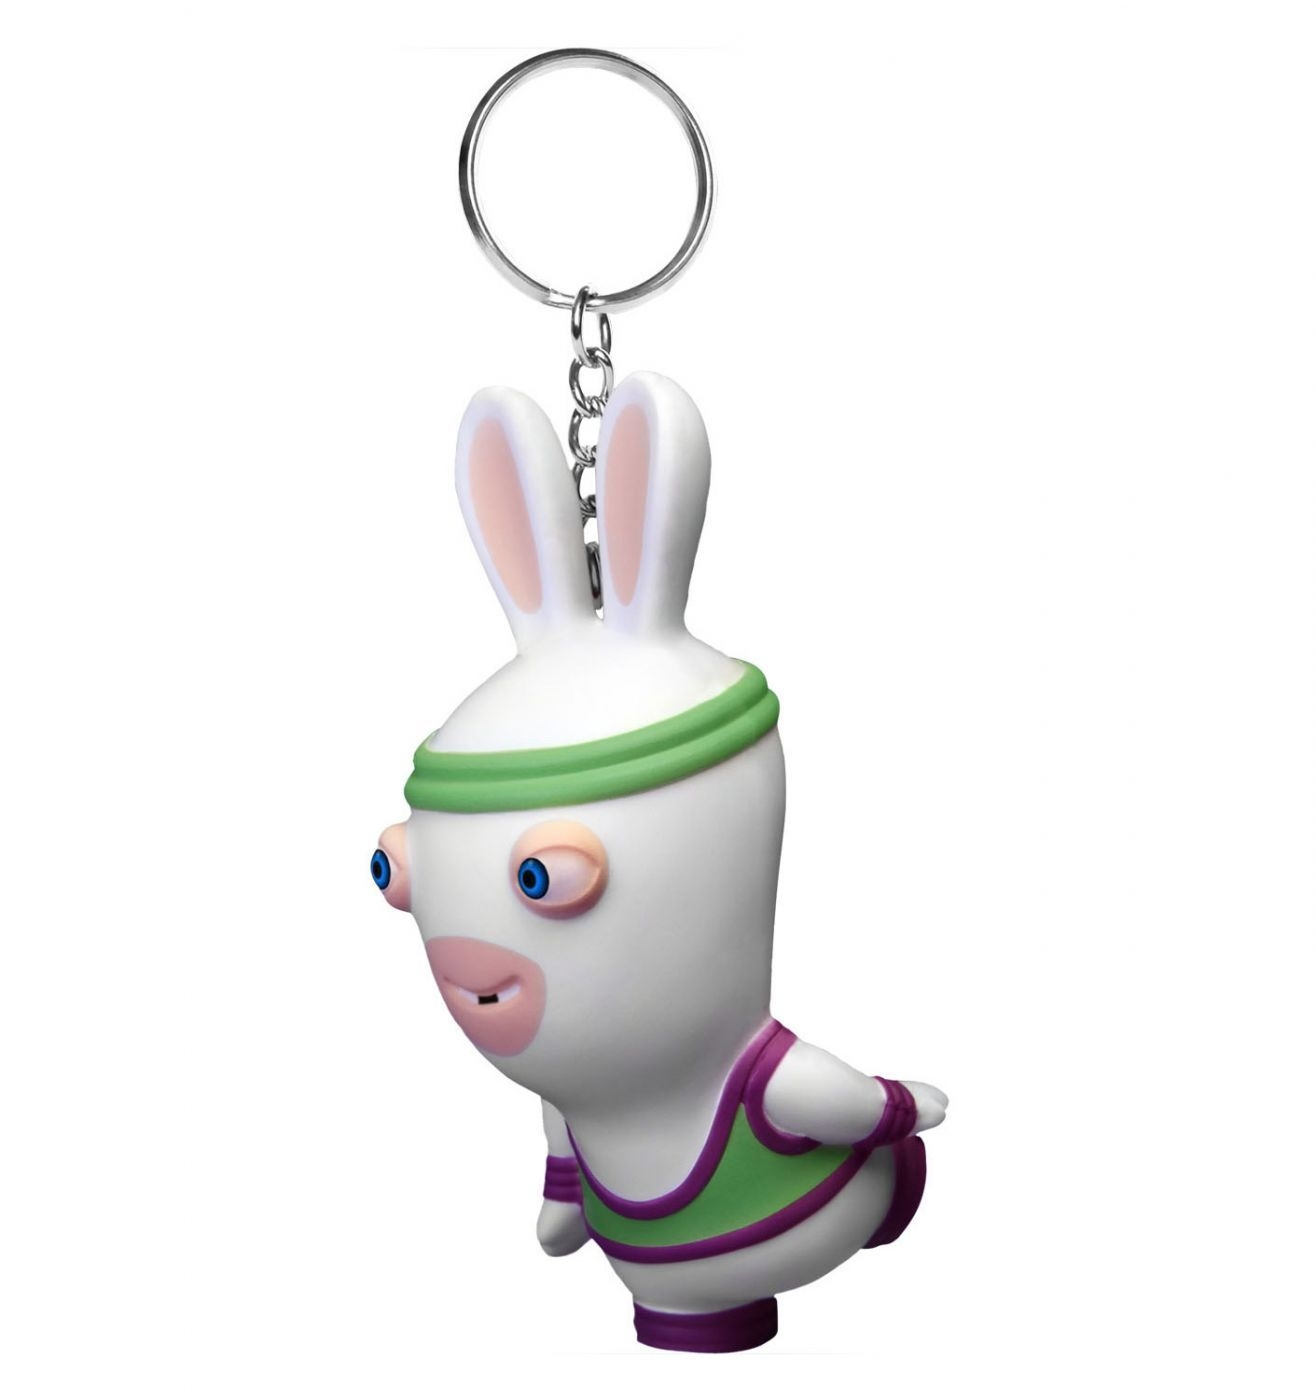 Rabbid Fitness Squeeze Anti-stress Keychain